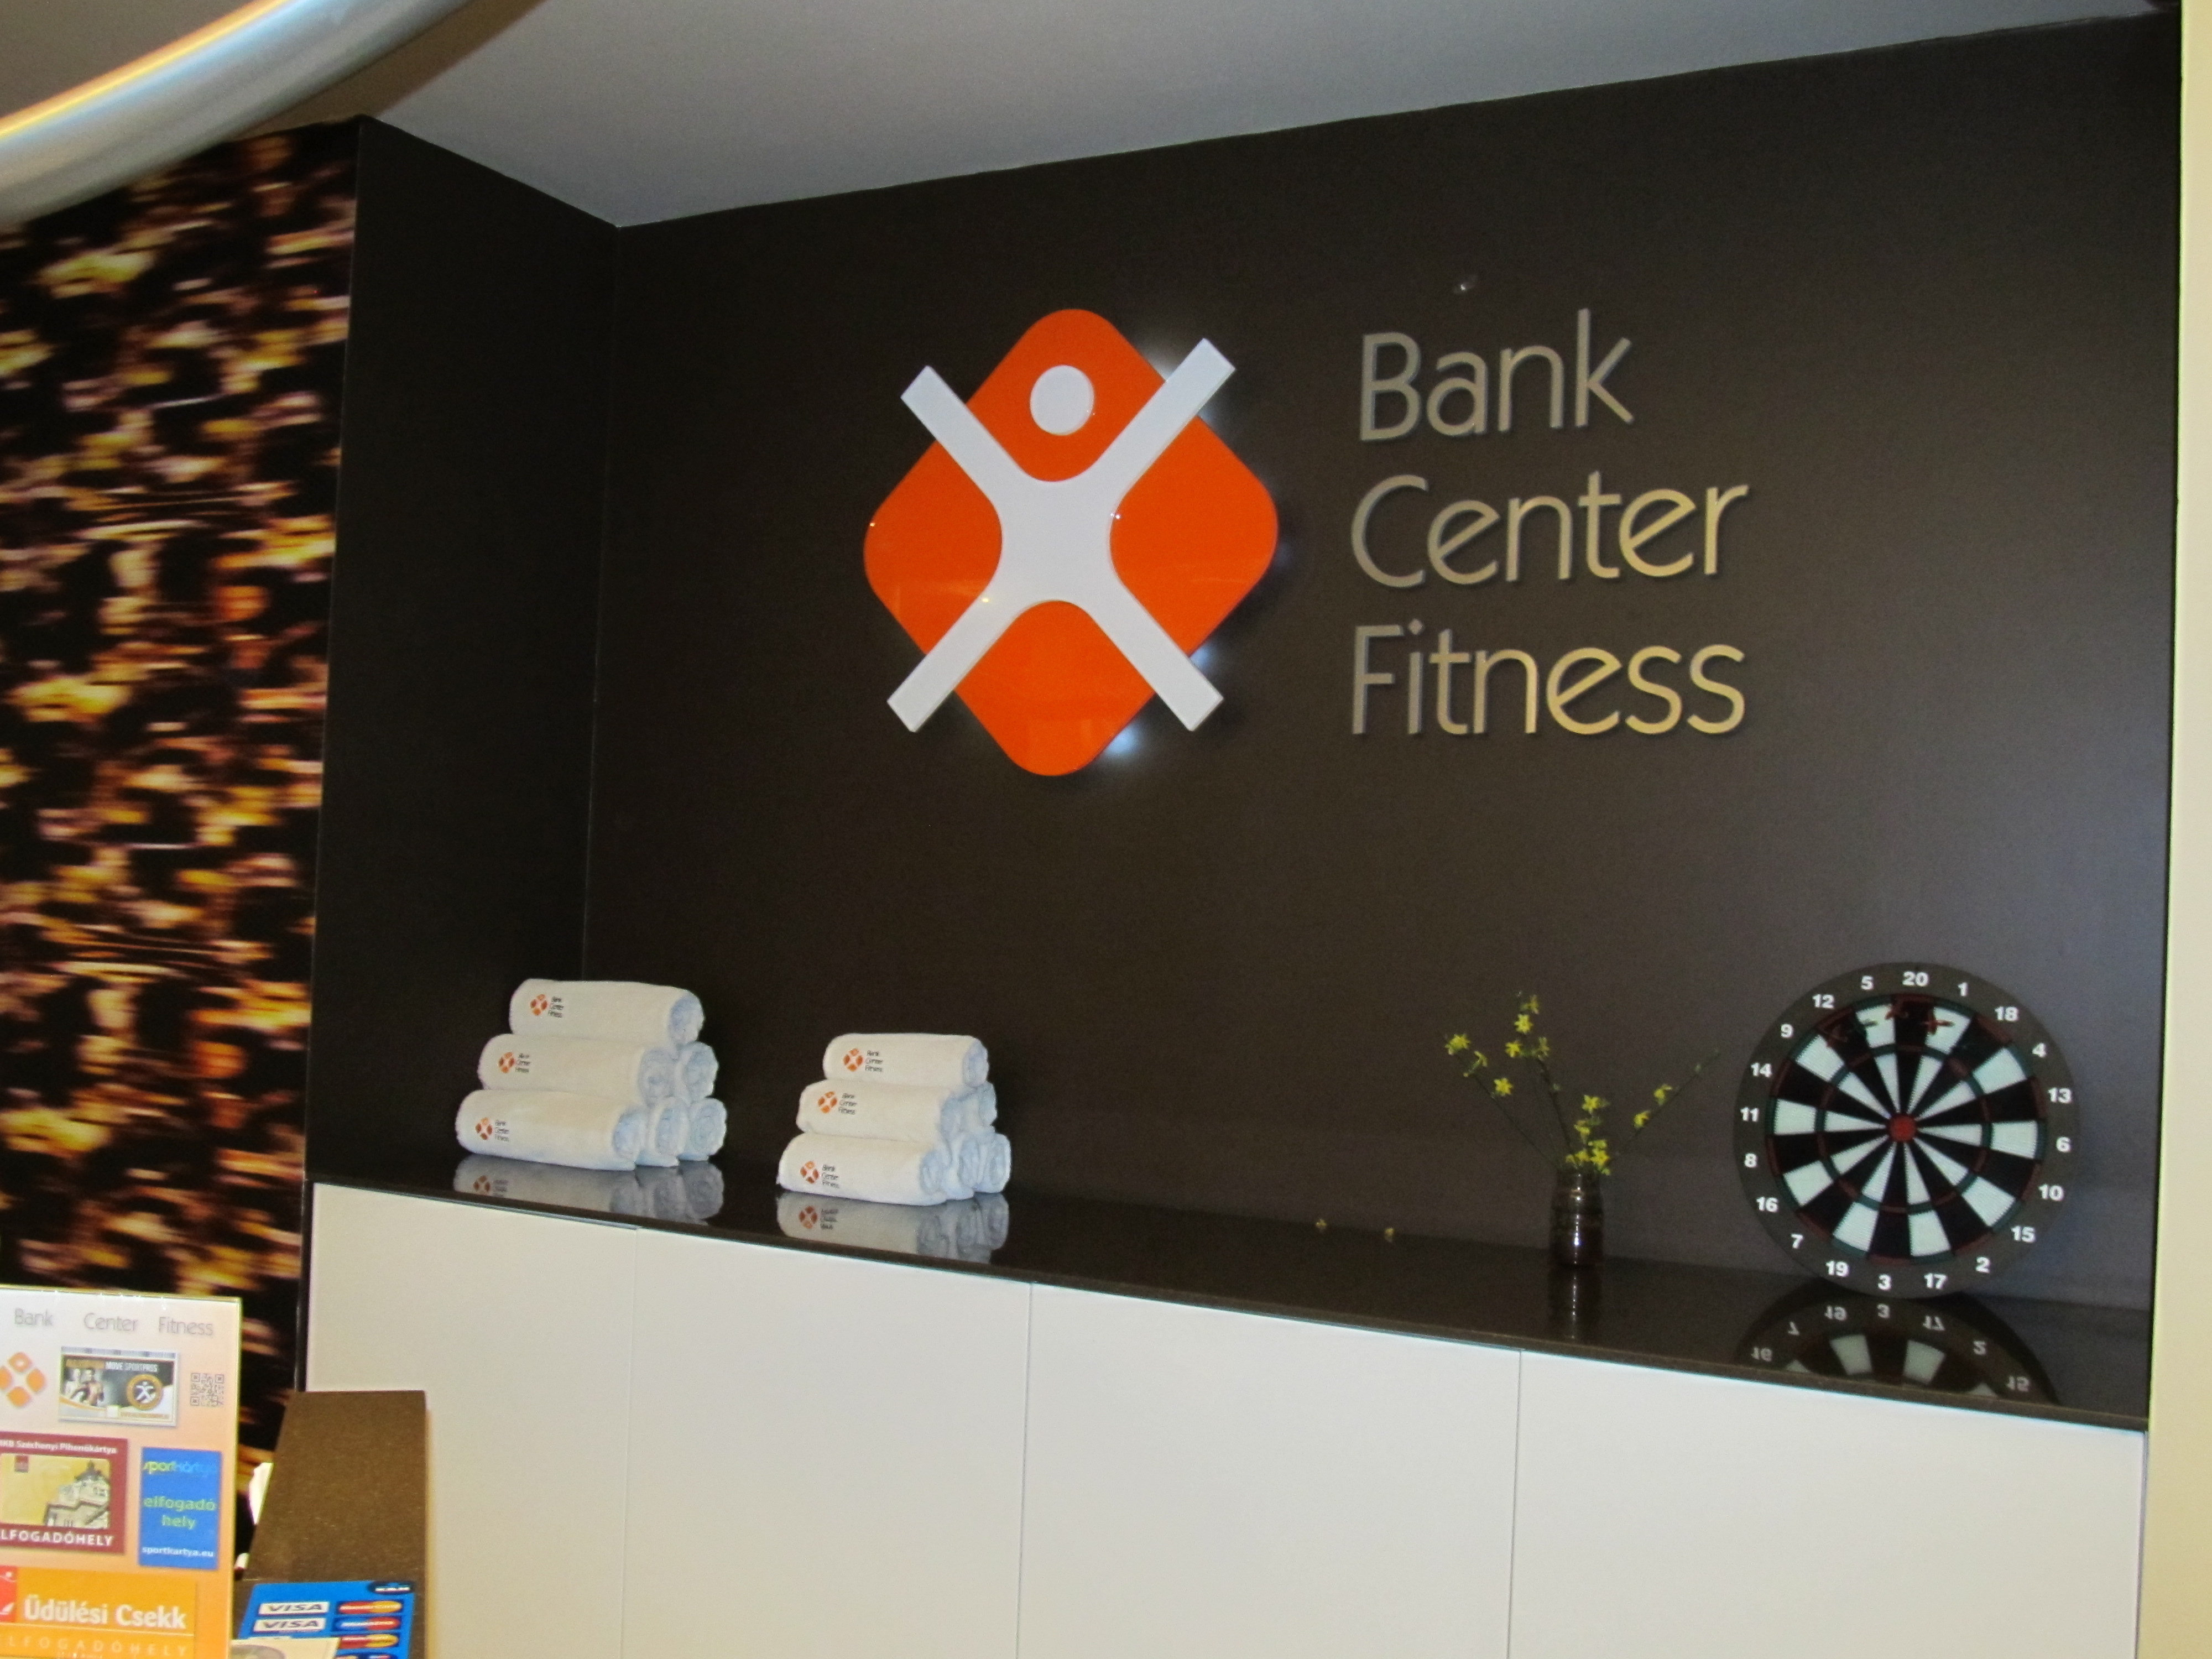 Bank Center Fitness - képgaléria - BCF